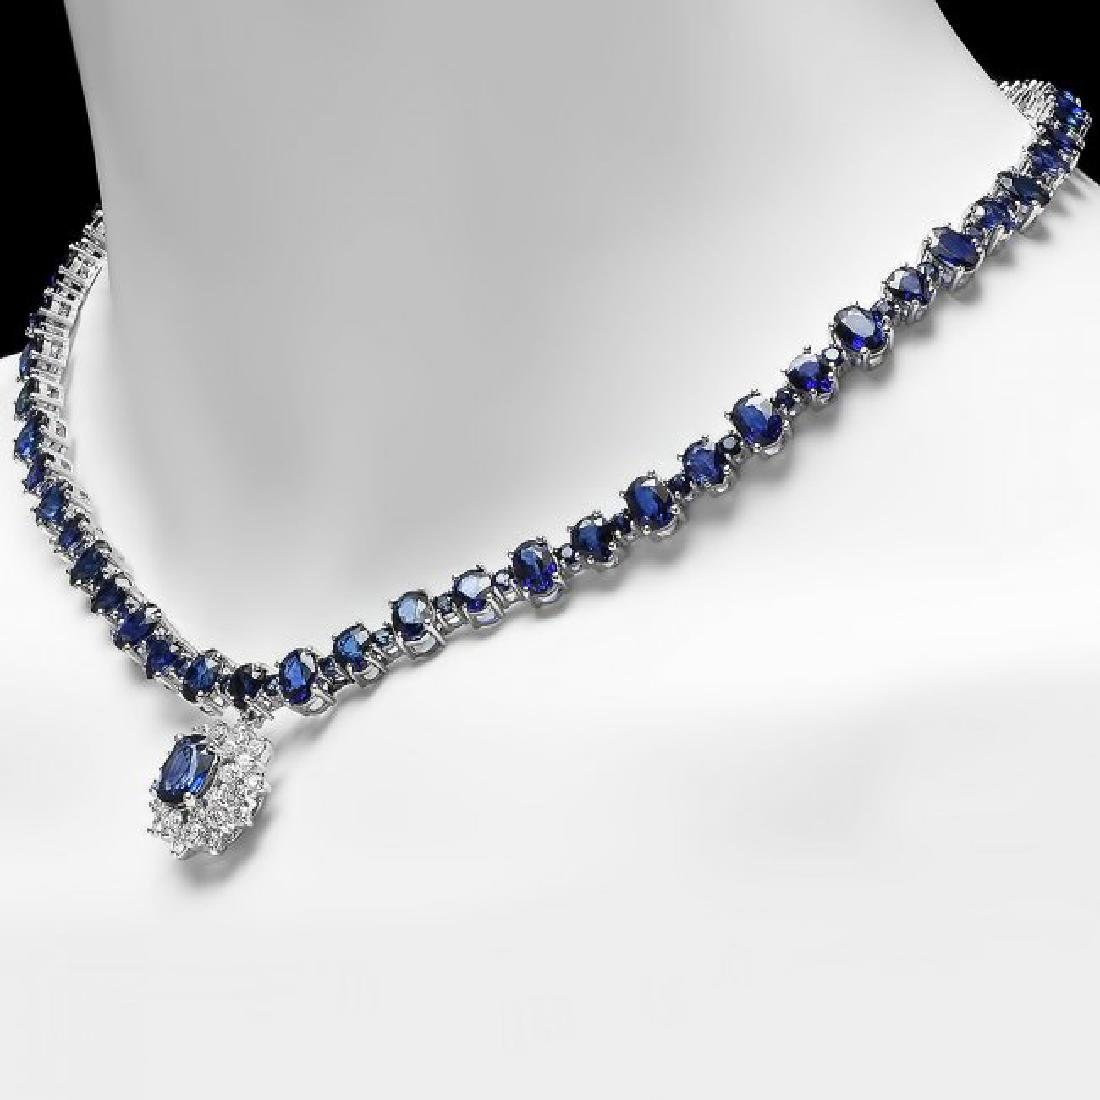 14k Gold 49.5ct Sapphire 1.70ct Diamond Necklace - 4